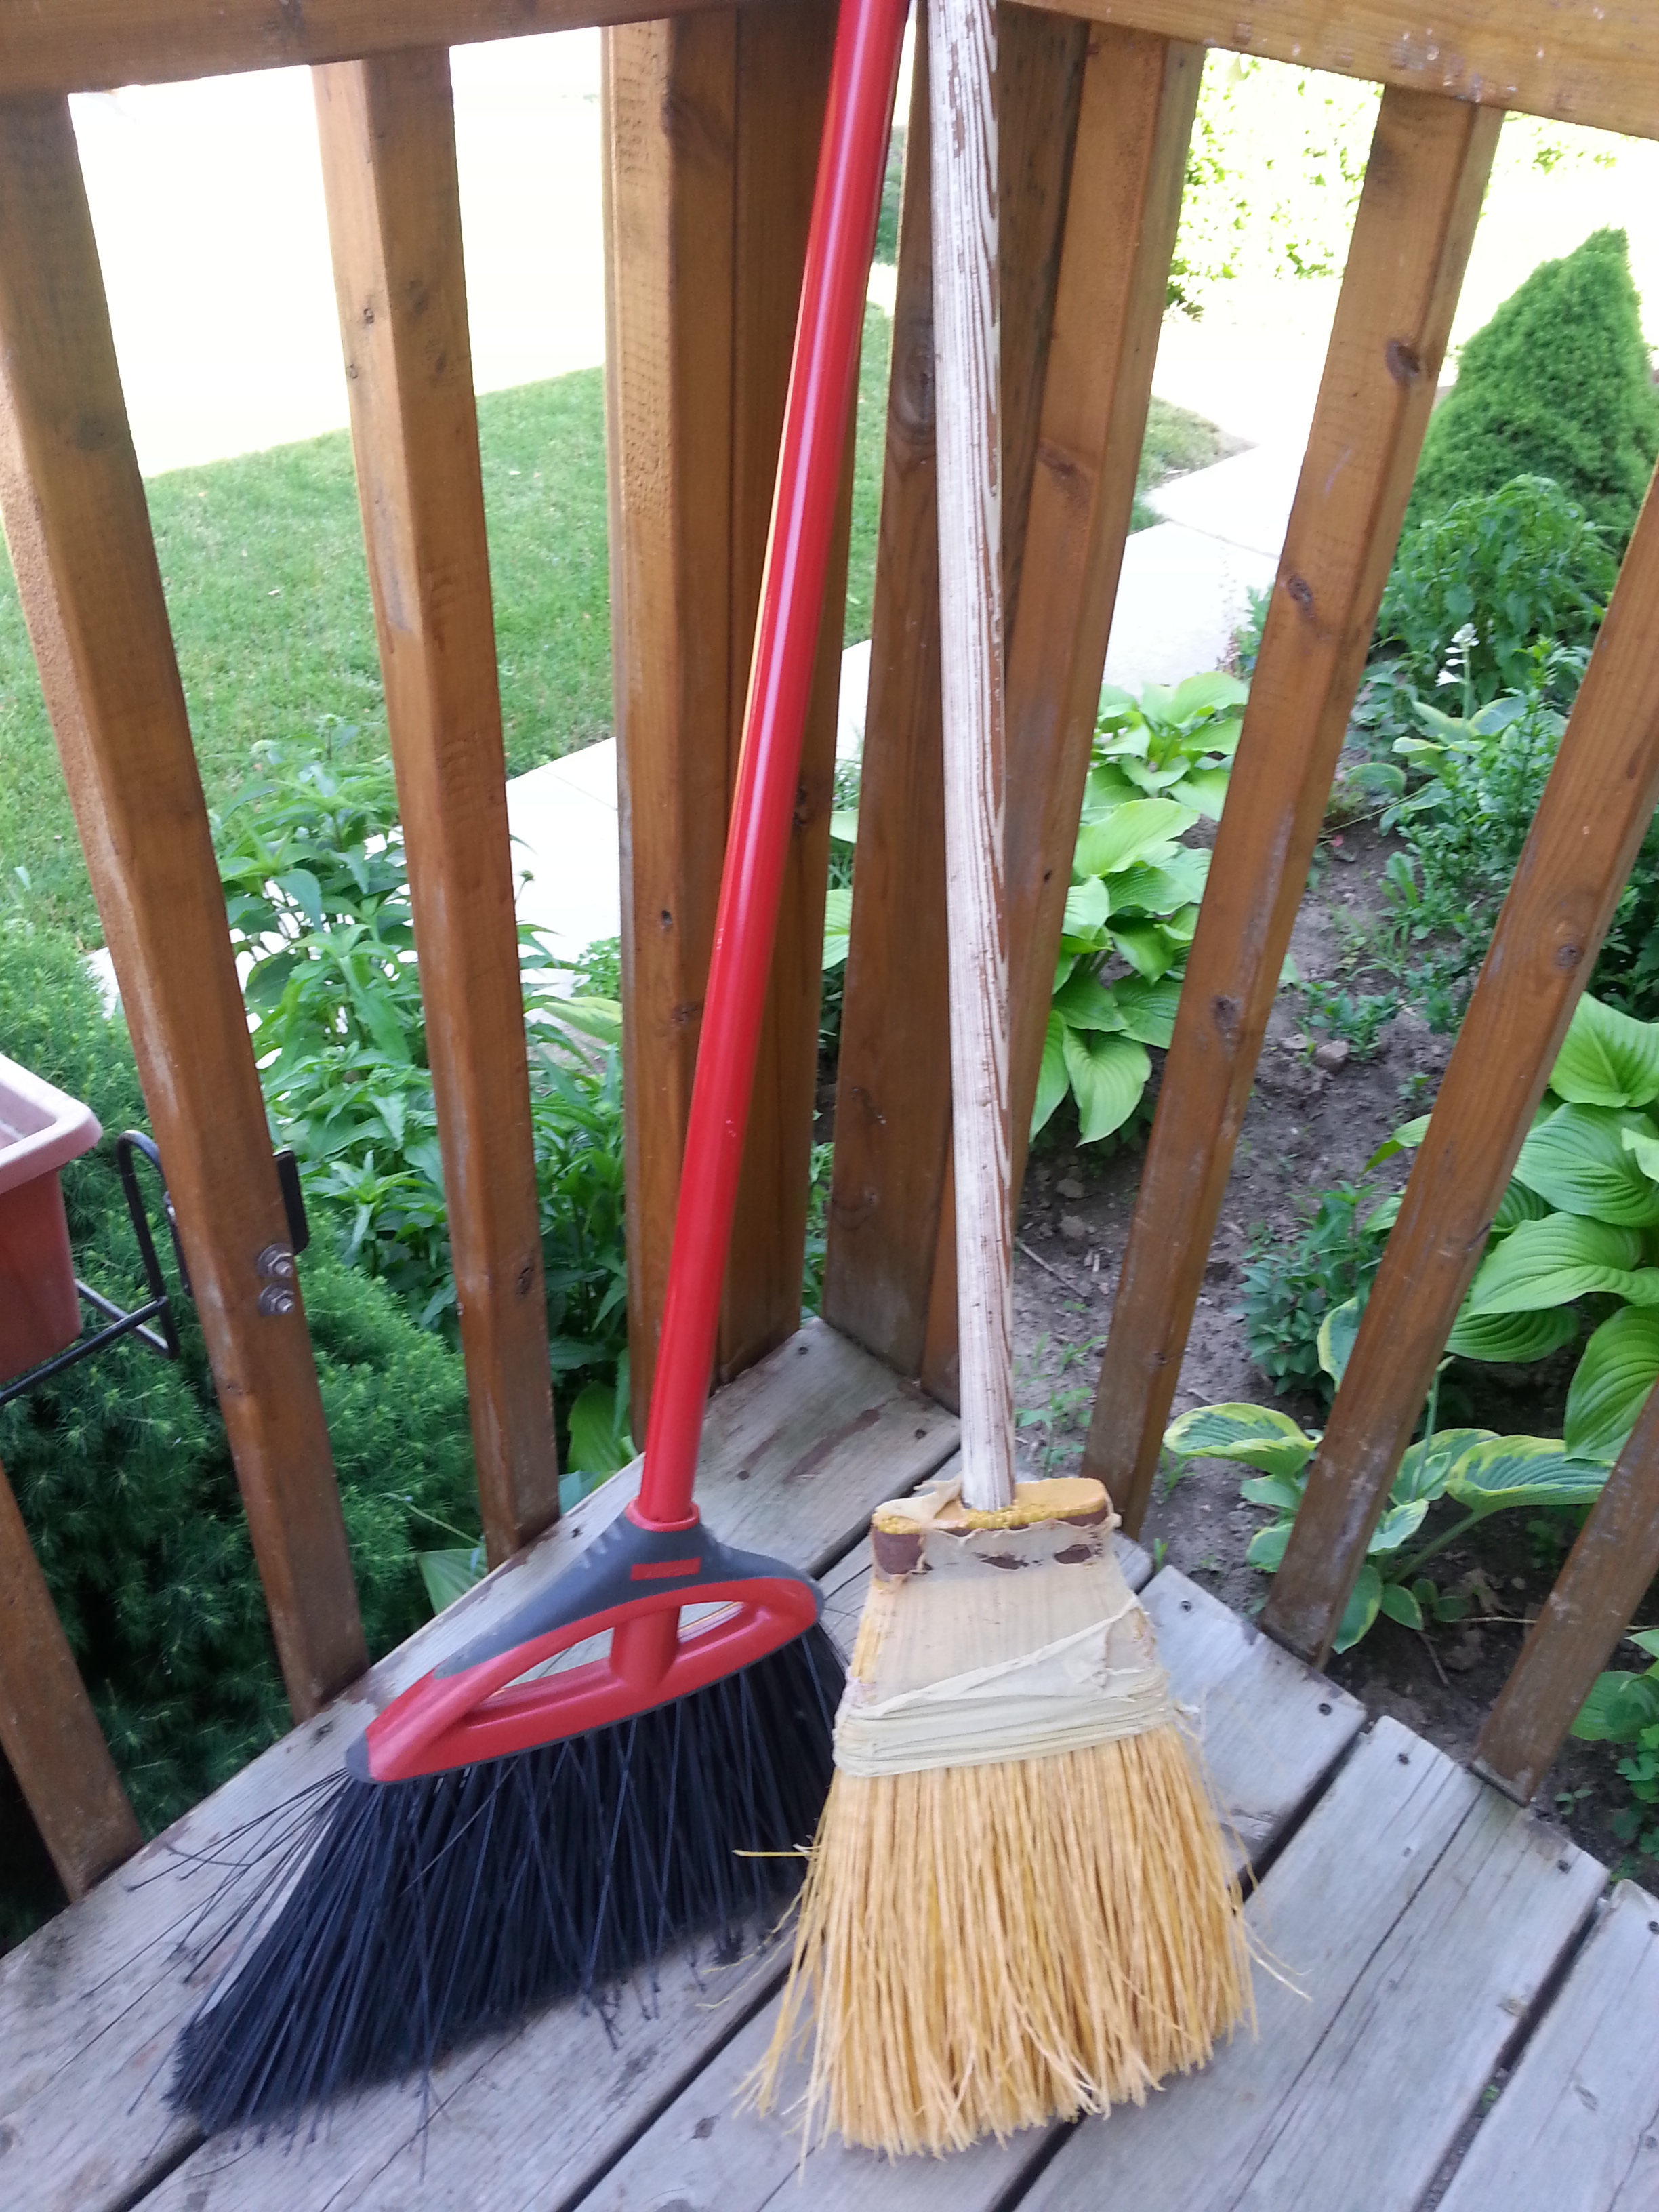 New Brooms, Old Brooms, and the Power of God – Gems of Discovery ...